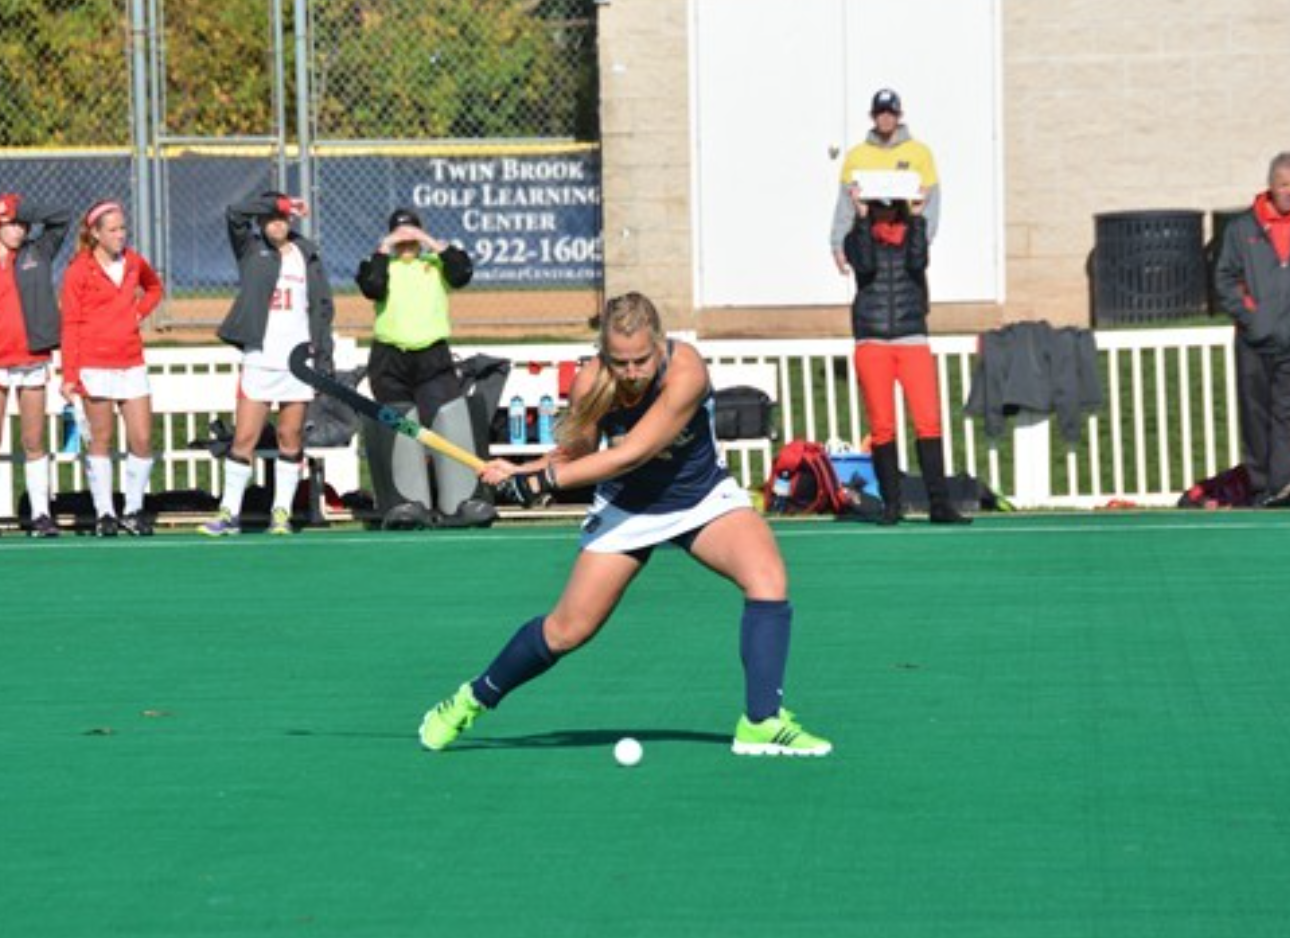 A new conference brings new challenges for Quinnipiac field hockey